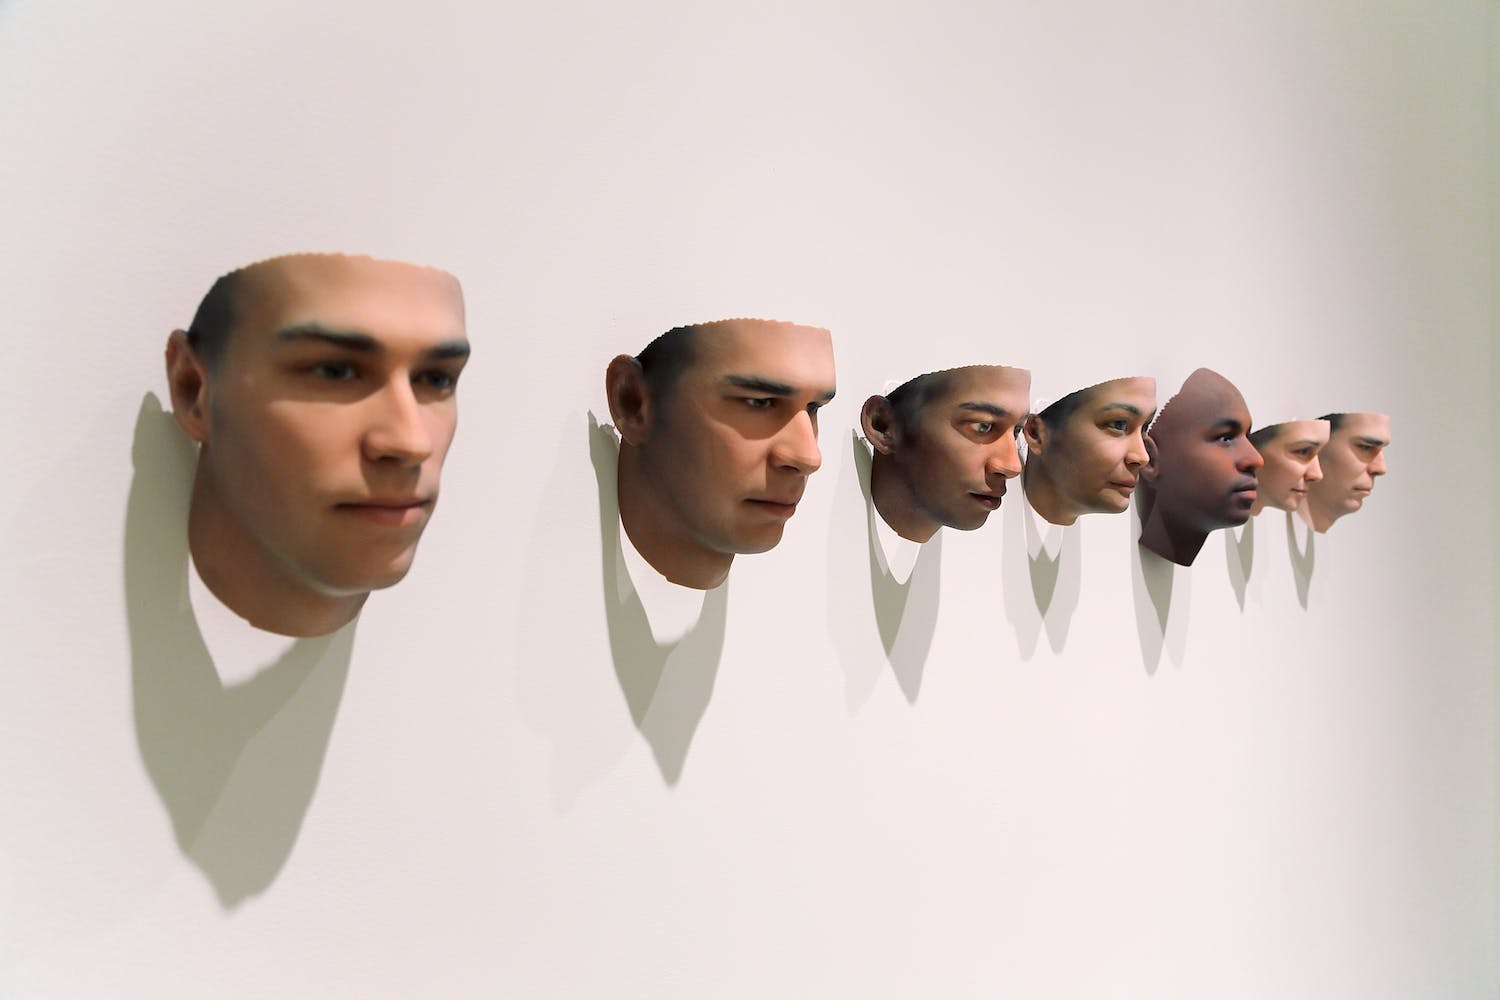 Seven 3d printed human heads mounted to a wall